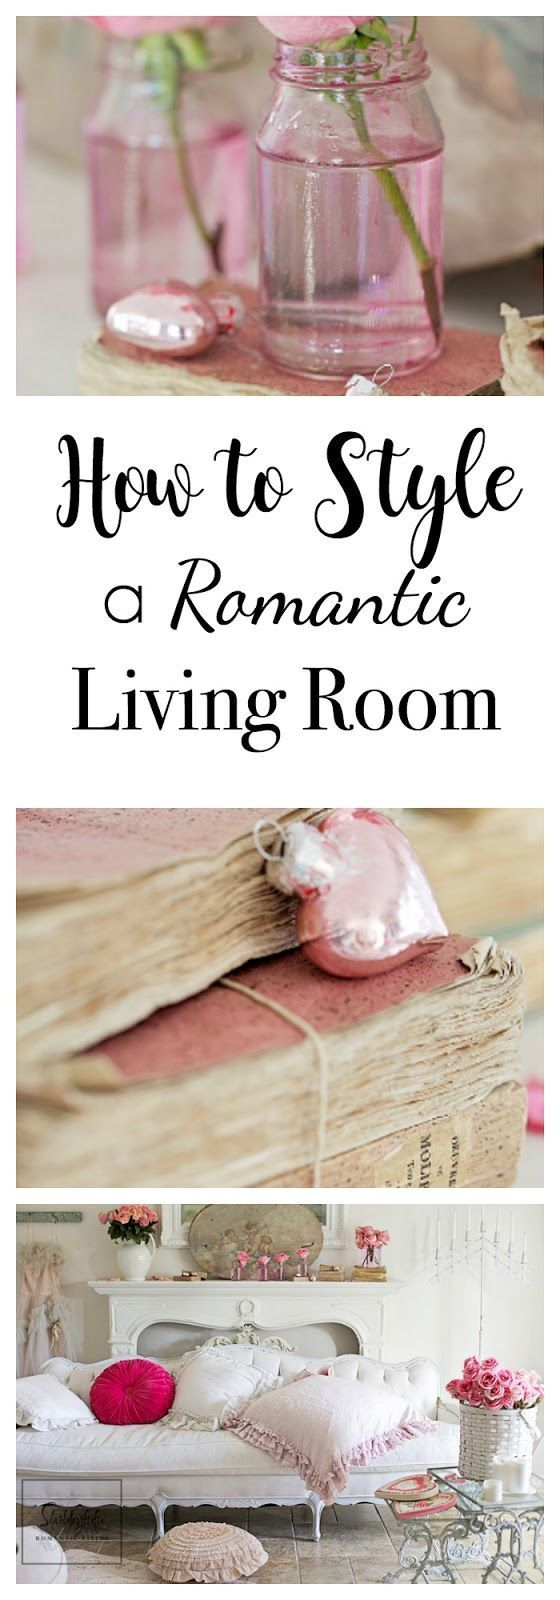 How to style the most romantic home ever for Valentine's Day with lots of pink! #valentinesday #decor #homedecorhabbyfufu